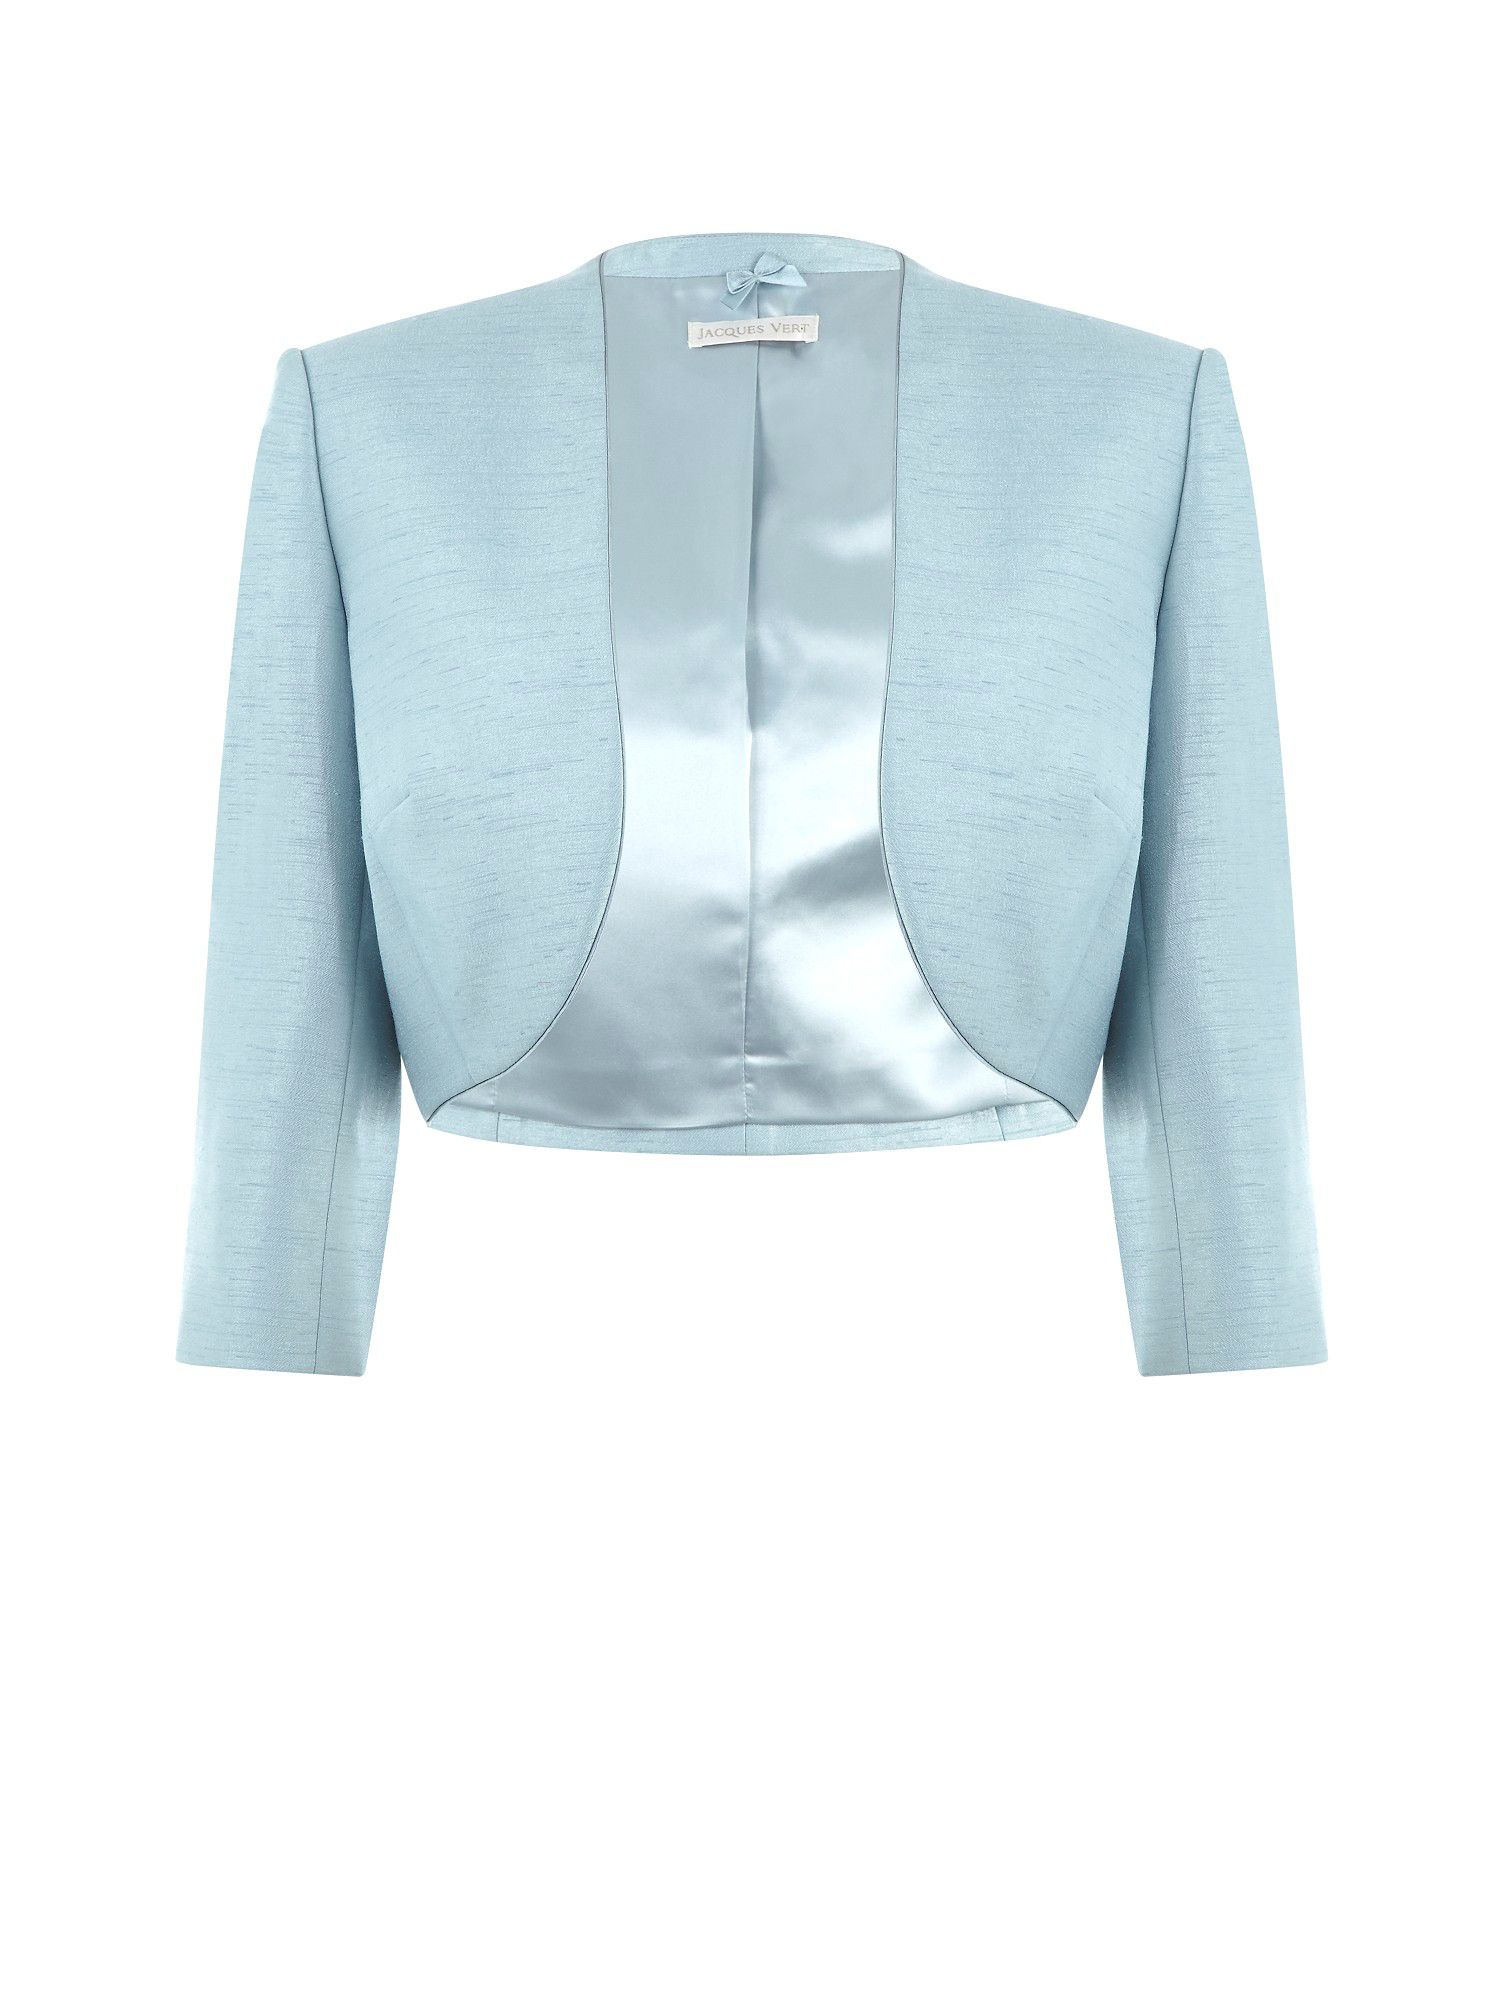 Misty blue tailored bolero